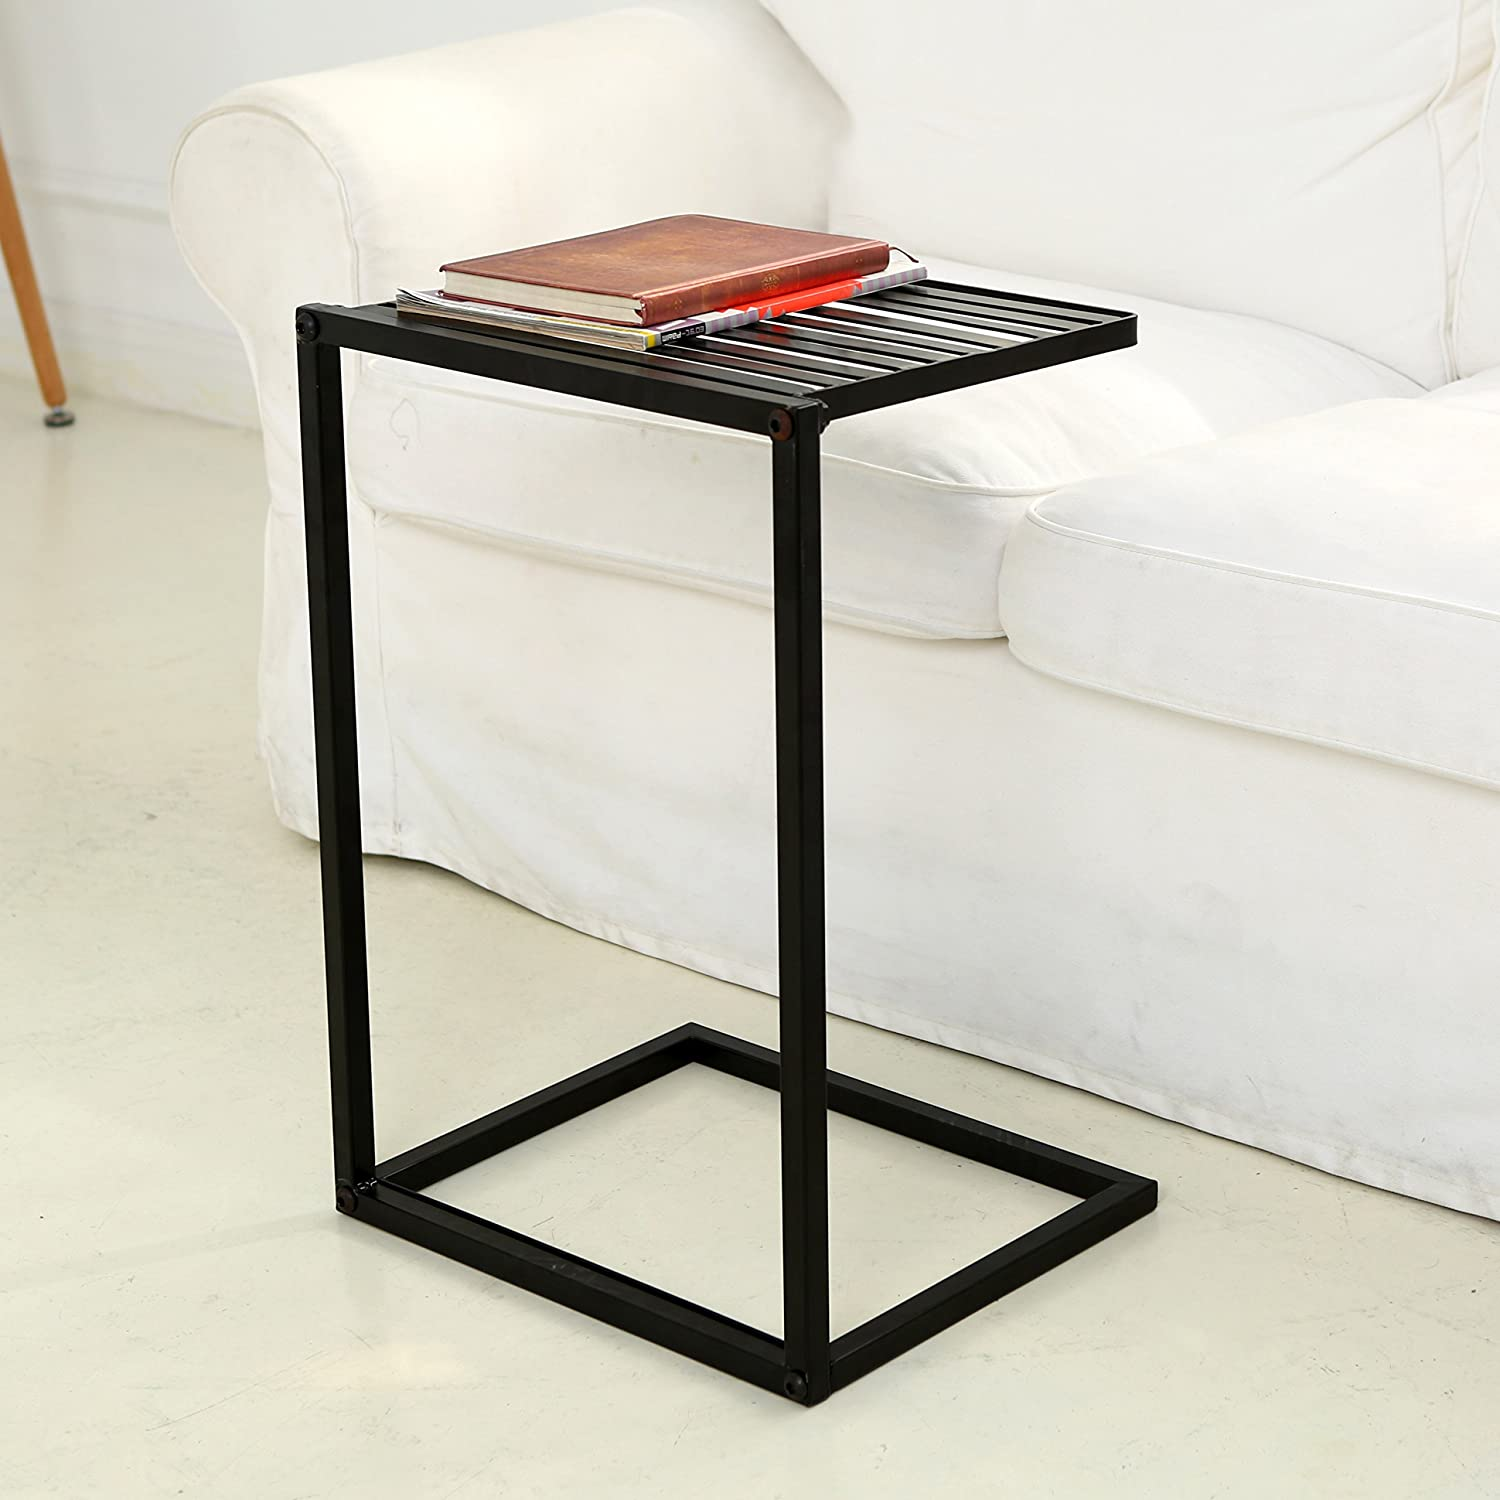 sofa side table slide under sofa side table slide under ikea home design ideas and inspiration. Black Bedroom Furniture Sets. Home Design Ideas